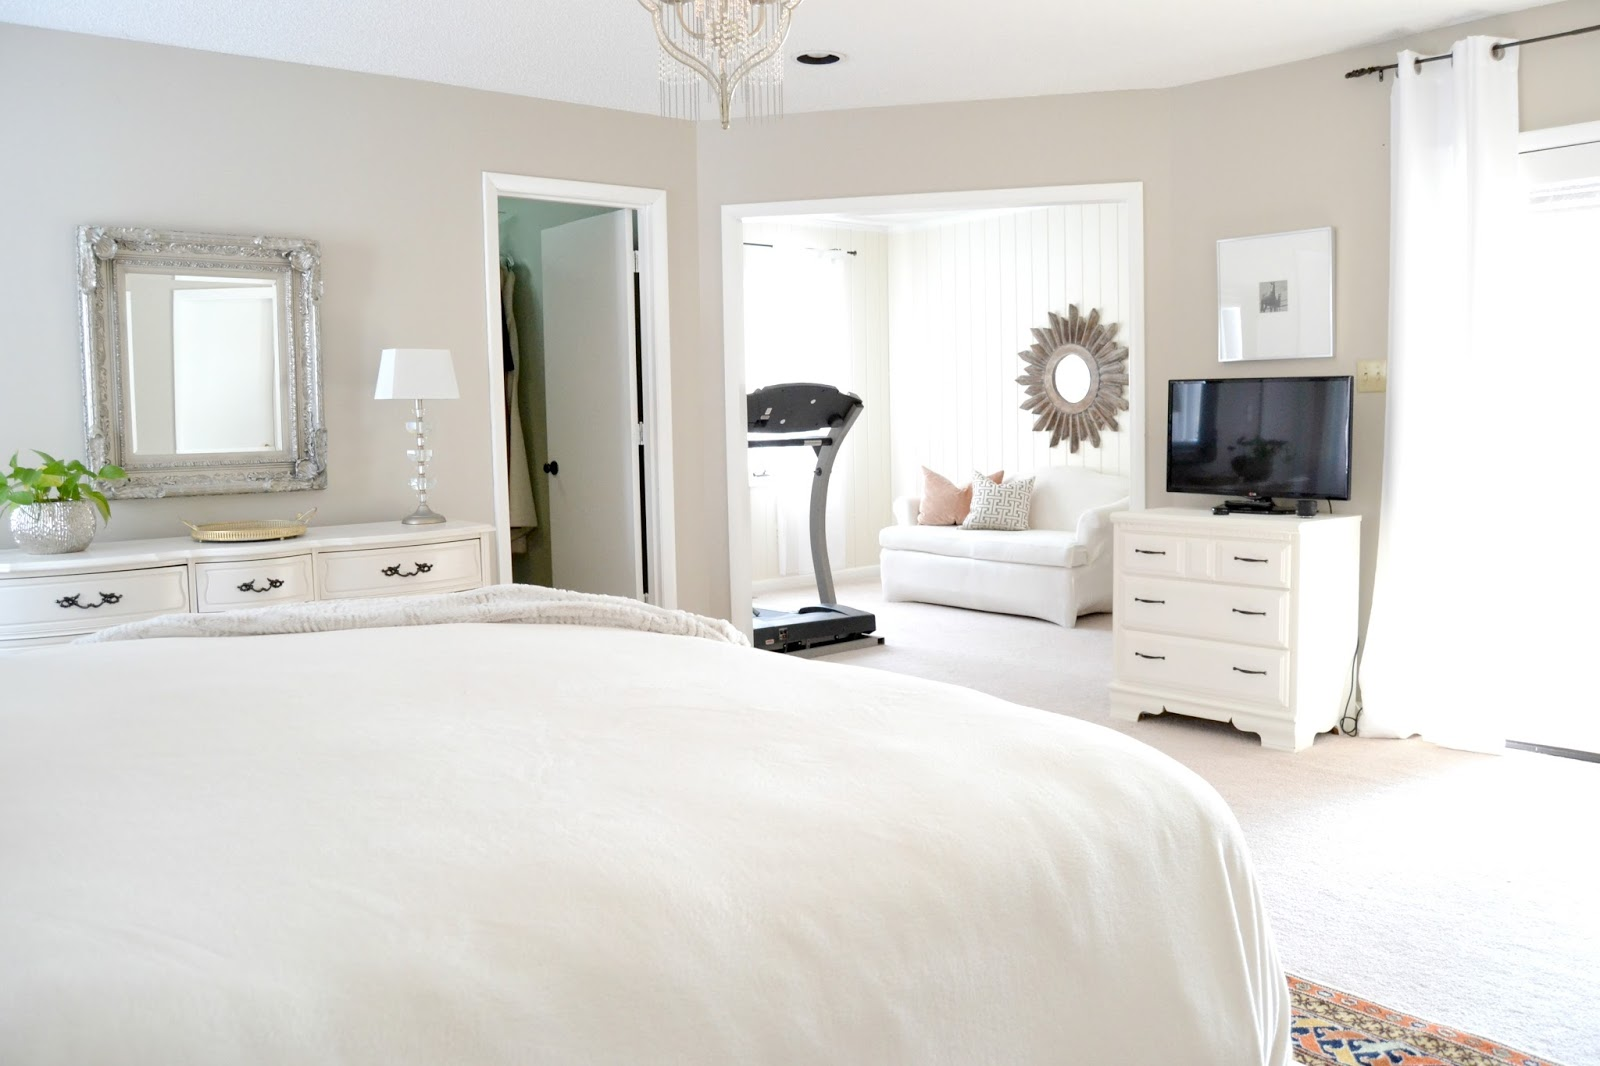 Bedroom Decorating Ideas On A Budget   Best Home Decorating Blogs On A  Budget Photos Decorating